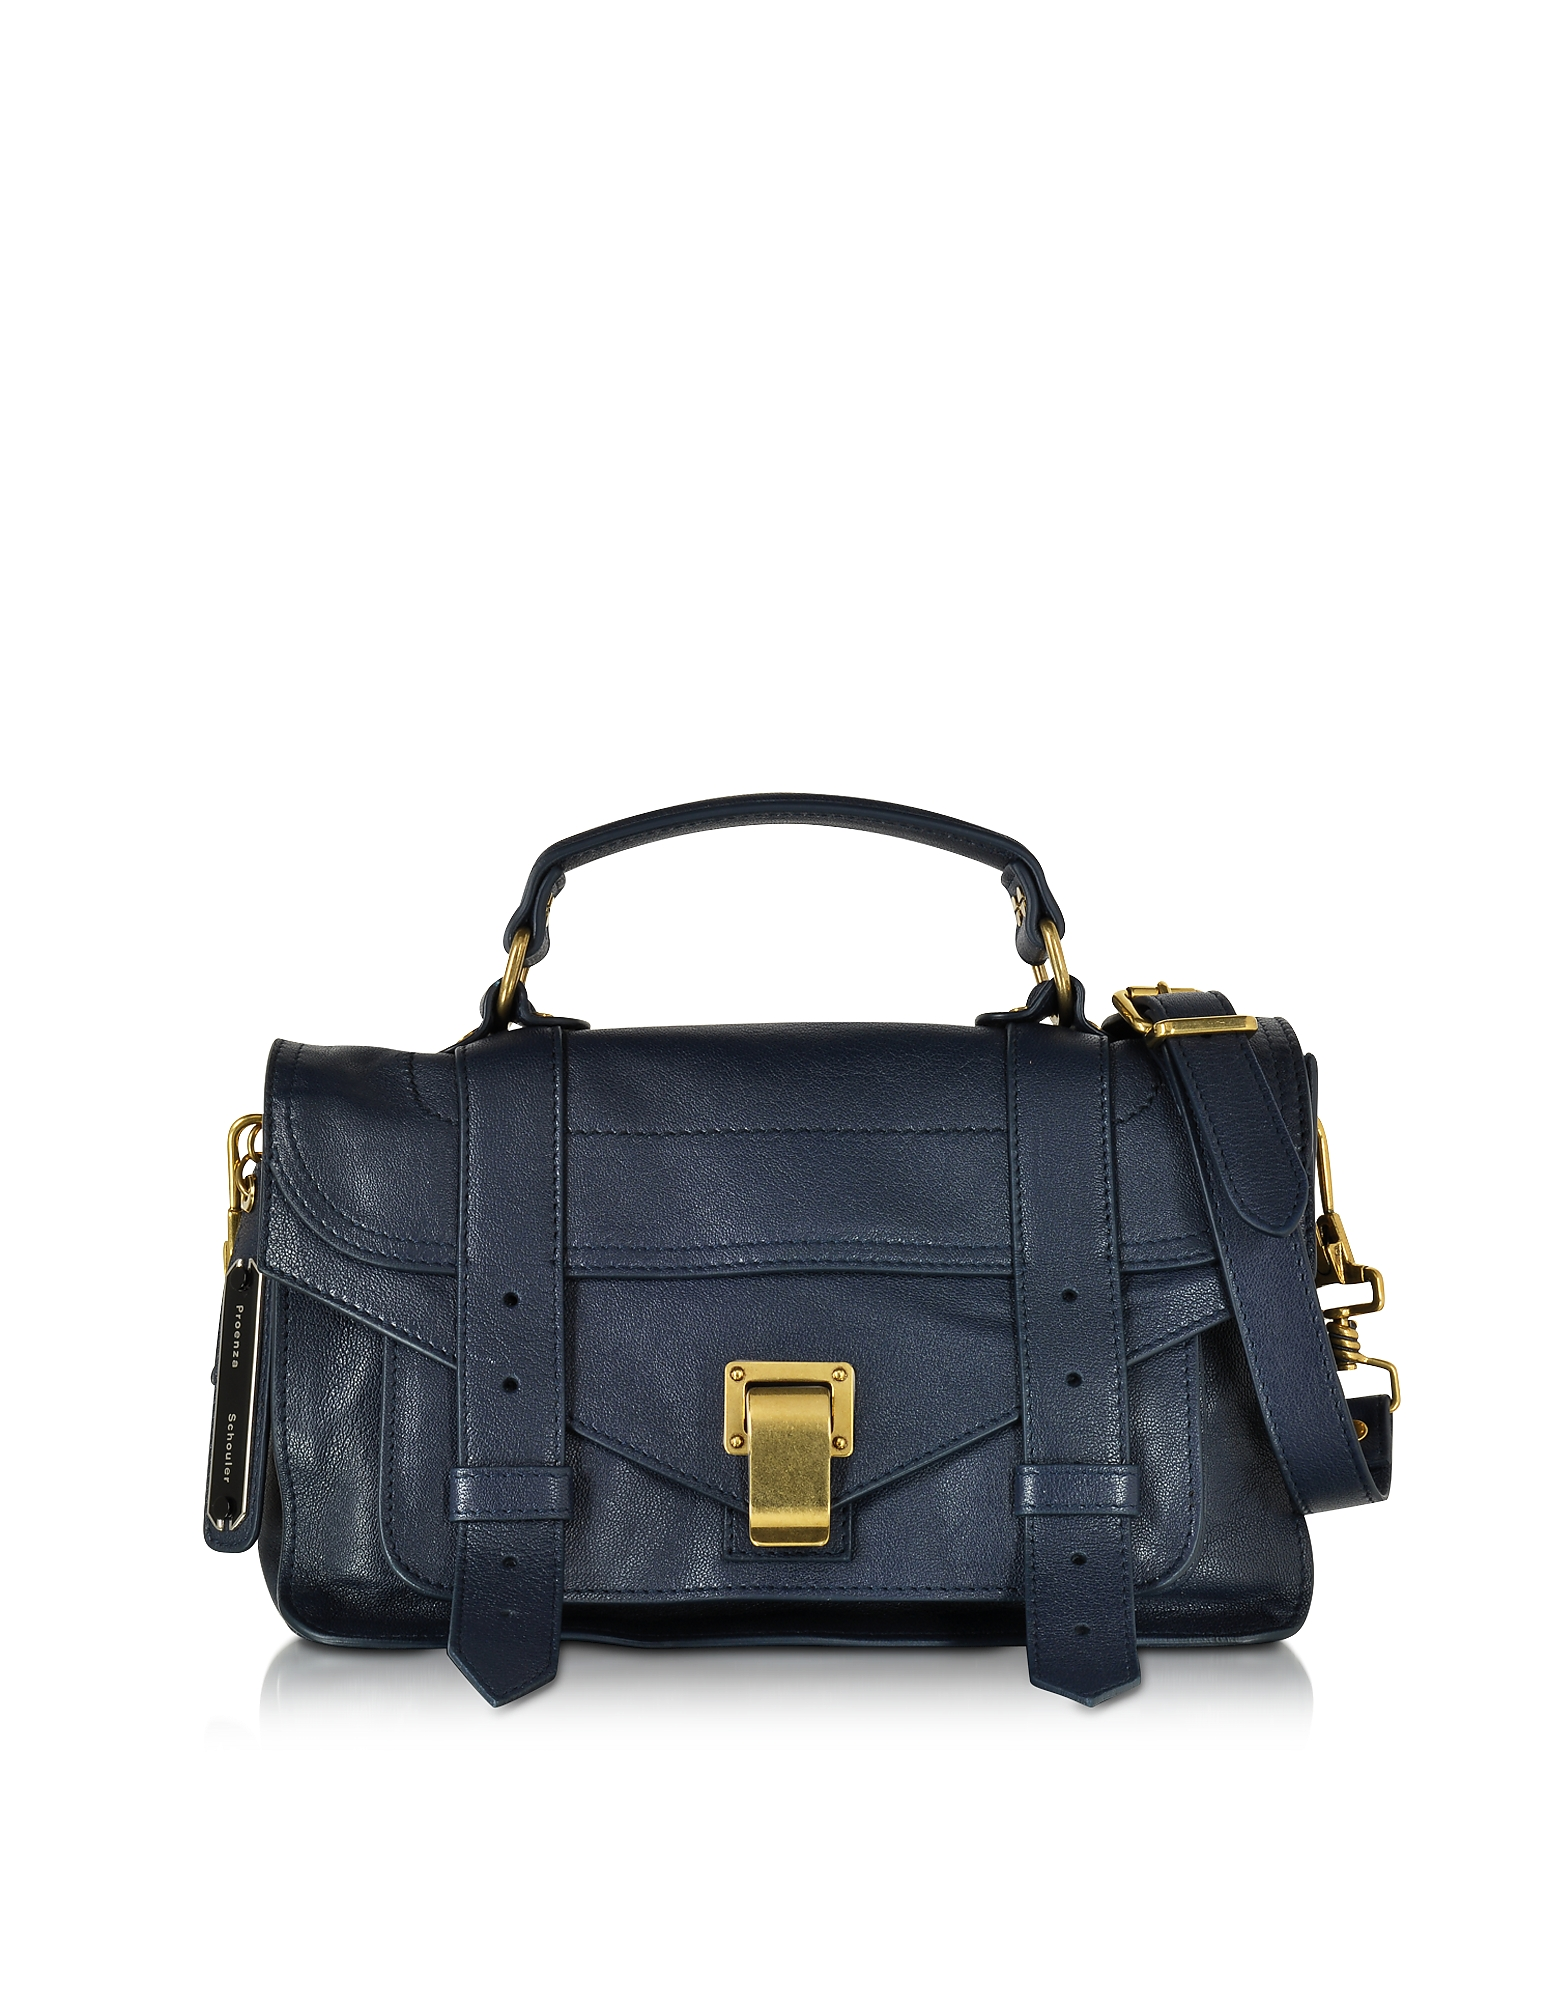 Proenza Schouler Handbags, PS1 Tiny Lux Midnight Leather Satchel Bag